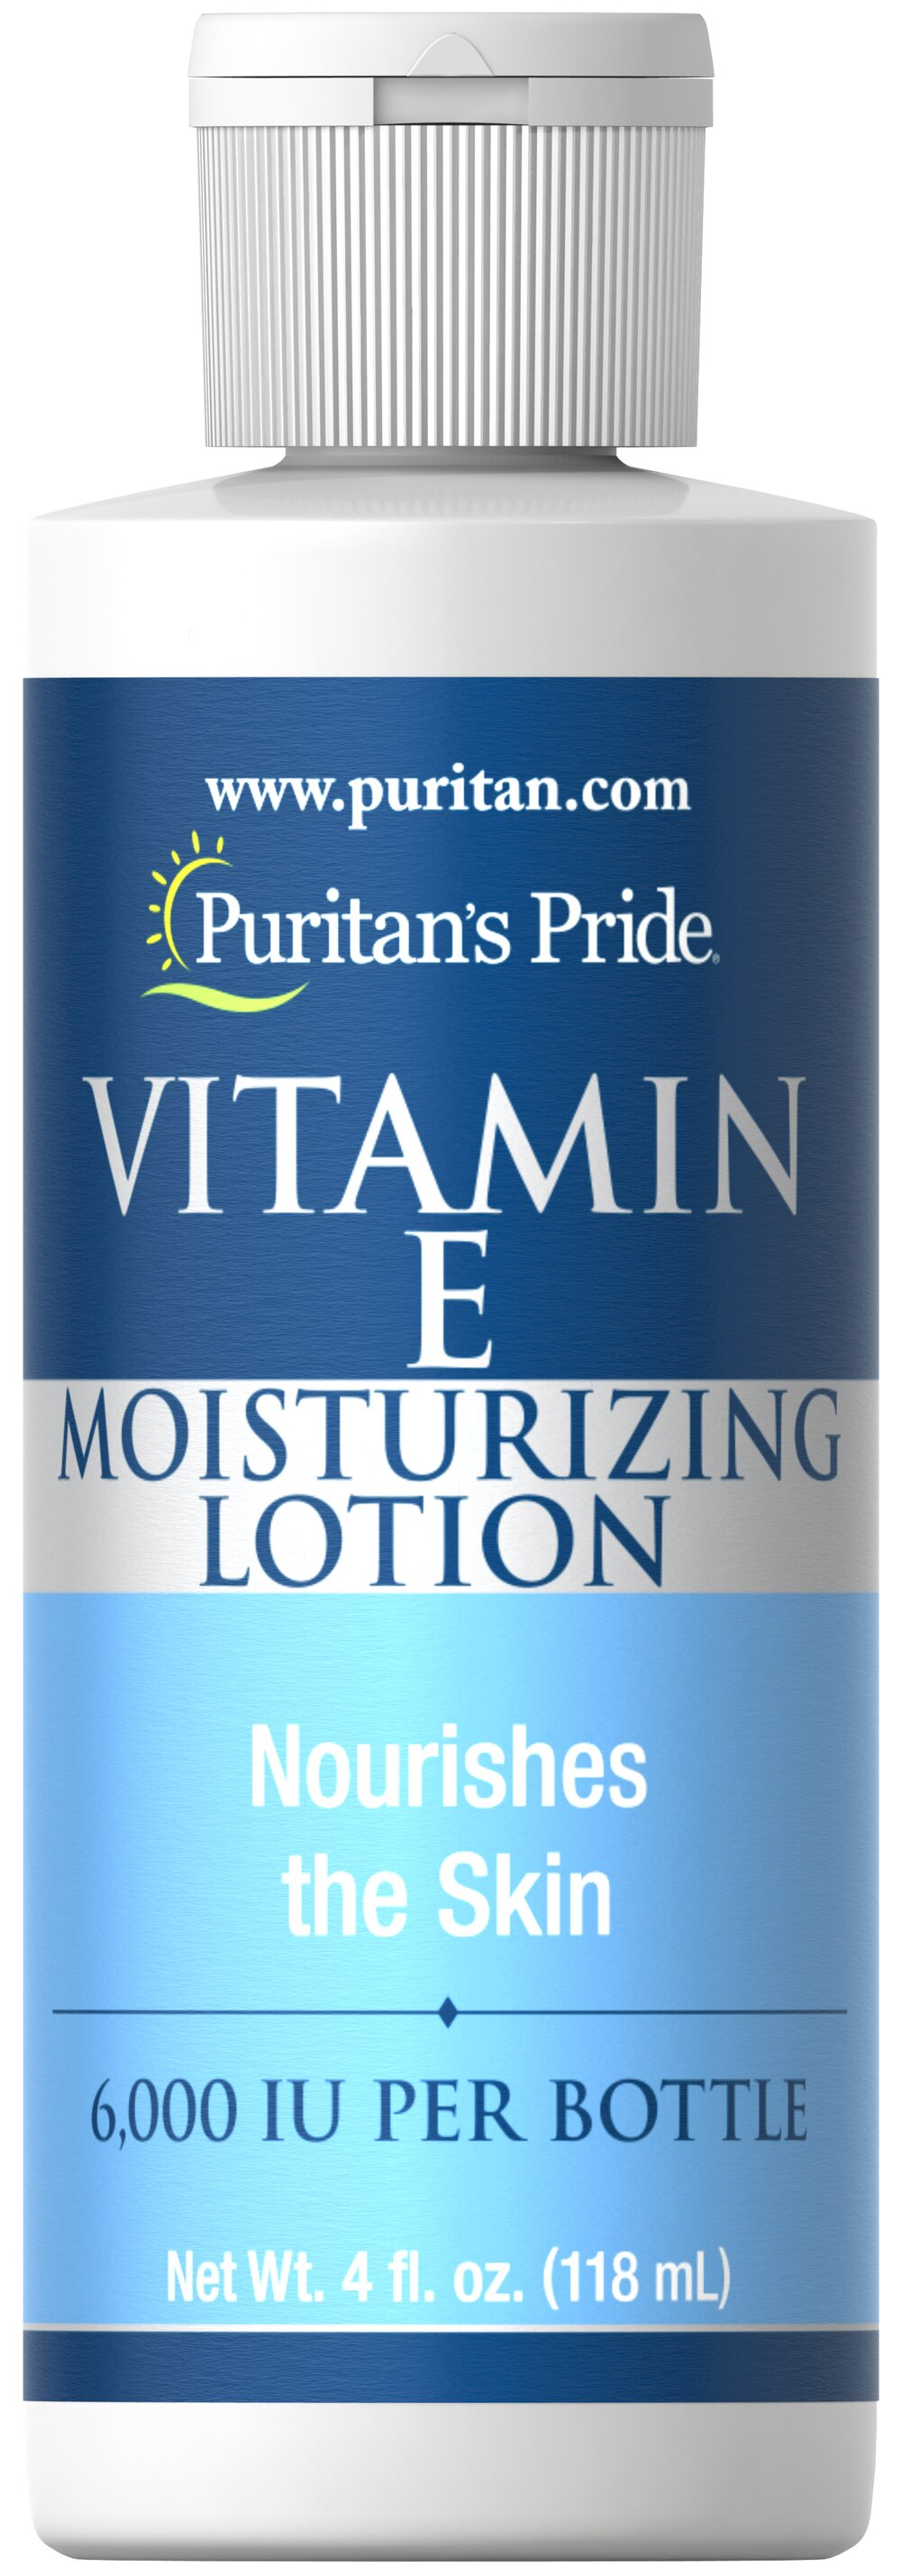 Vitamin E Moisturizing Lotion 6,000 IU <p>The All-Over Body Moisturizer</p>  <p>Now give your skin the natural benefits of Vitamin E Lotion. This rich lotion gives you 6,000 IU of Vitamin E per bottle with the added moisturizing benefits of natural Wheat Germ Oil. The protective emollient action maintains the natural moisture balance of the skin leaving even the driest skin smooth all over.</p> 4 oz Lotion 6000 IU $8.29